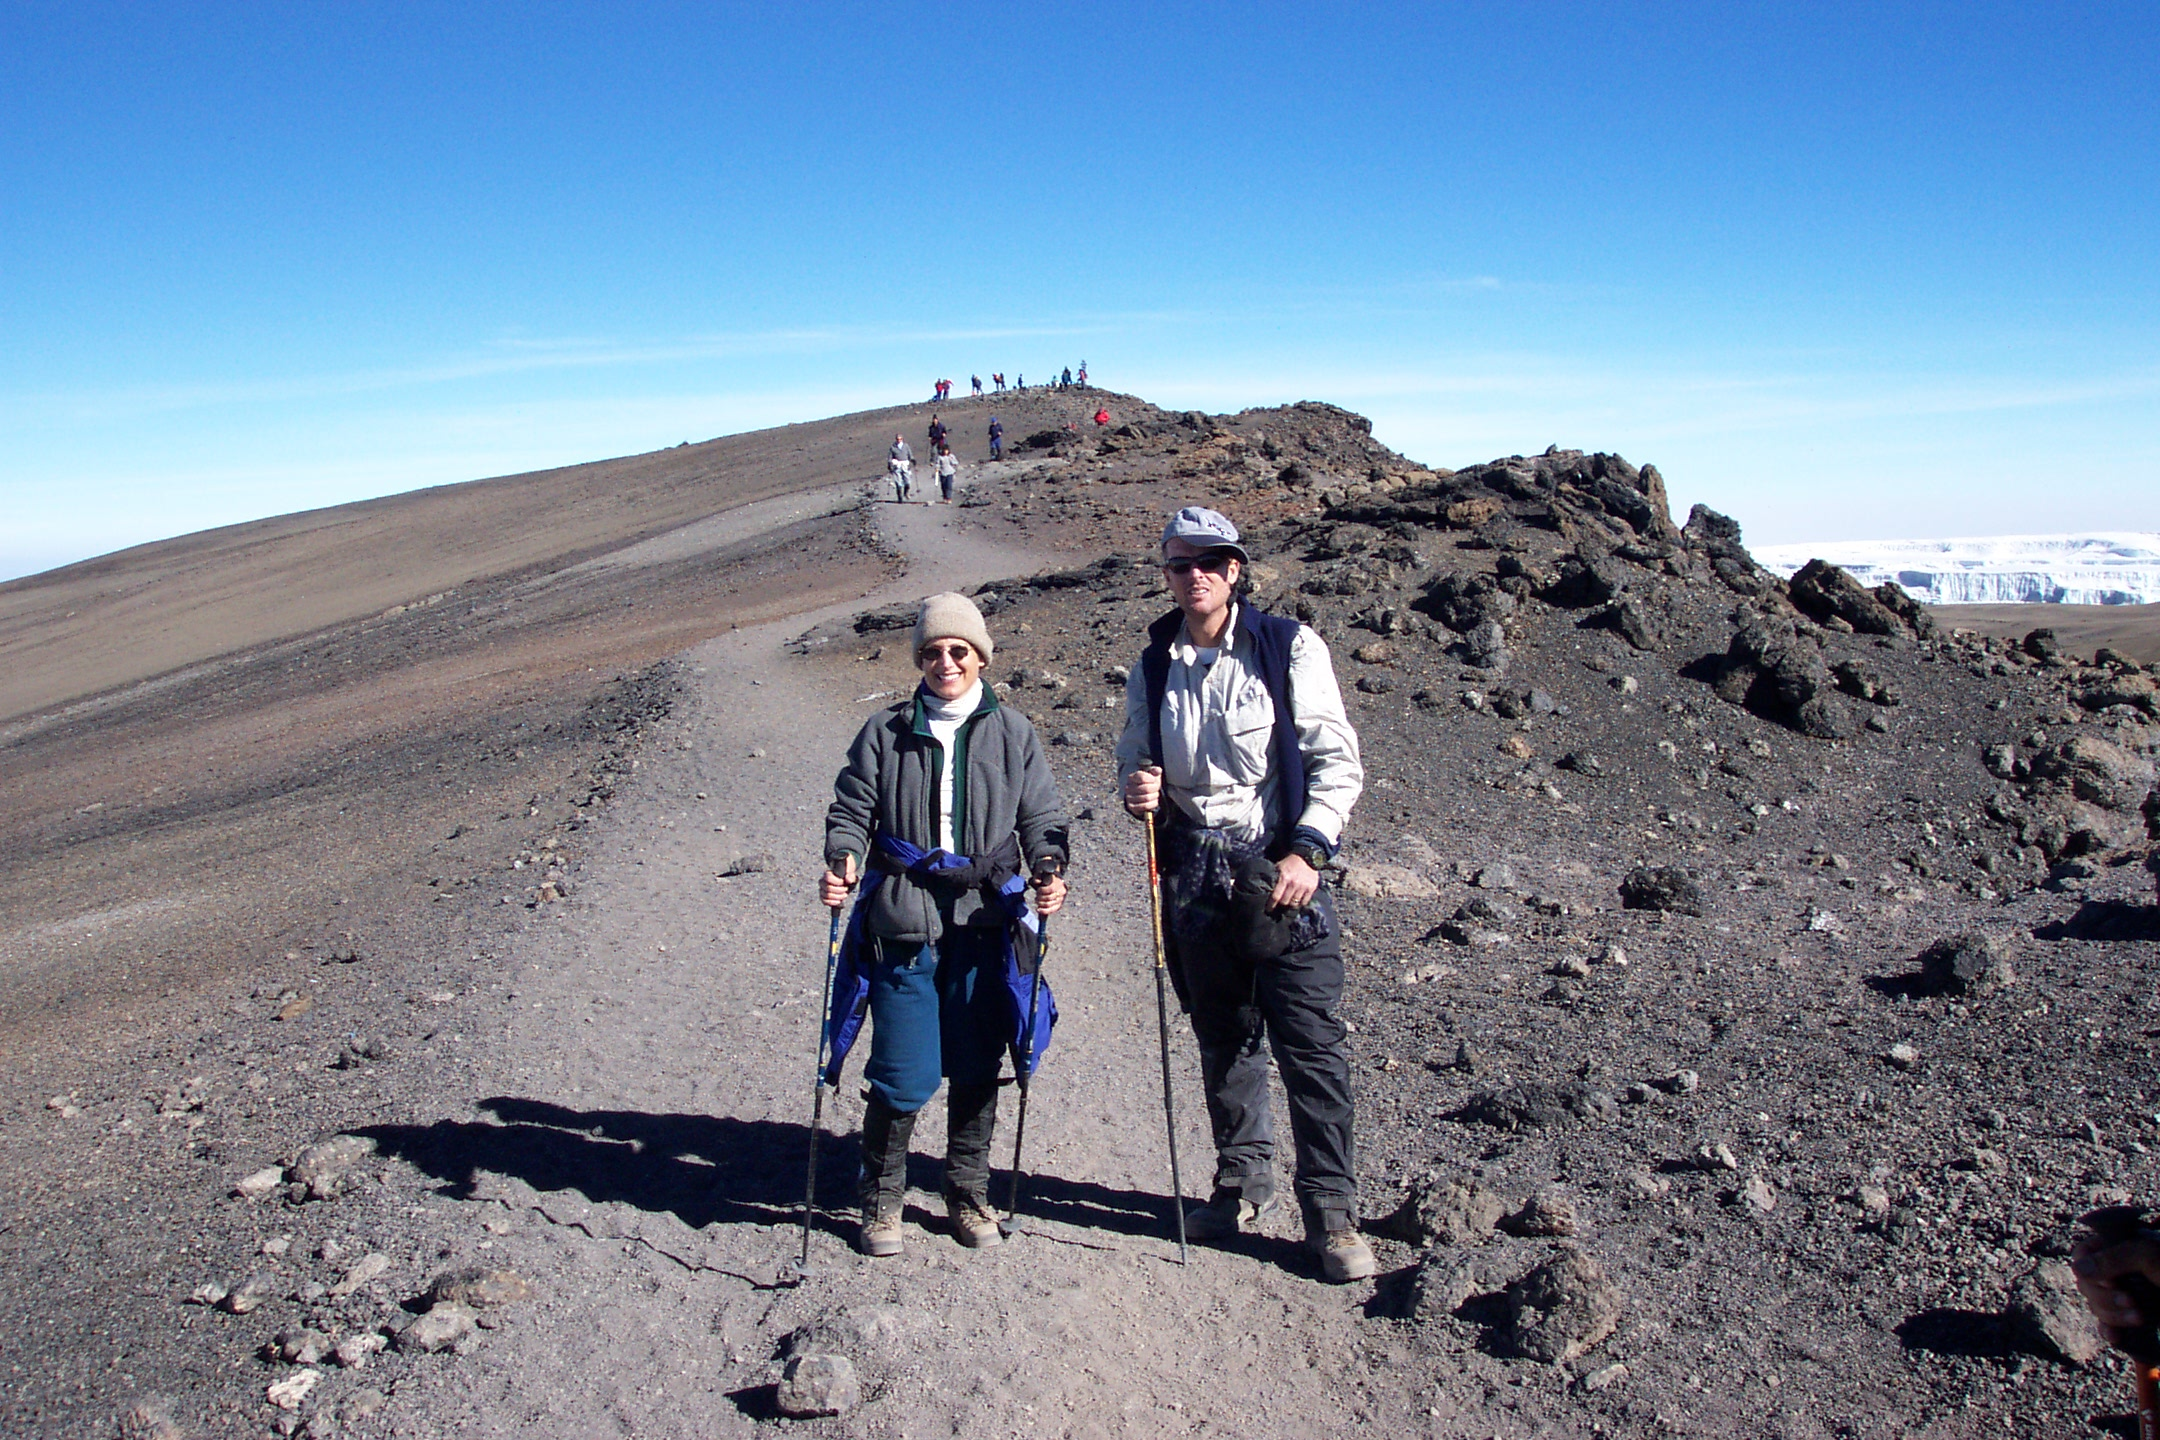 The last hundred yards to Uhuru Peak, the true Summit of Kili  (Eric Simonson)